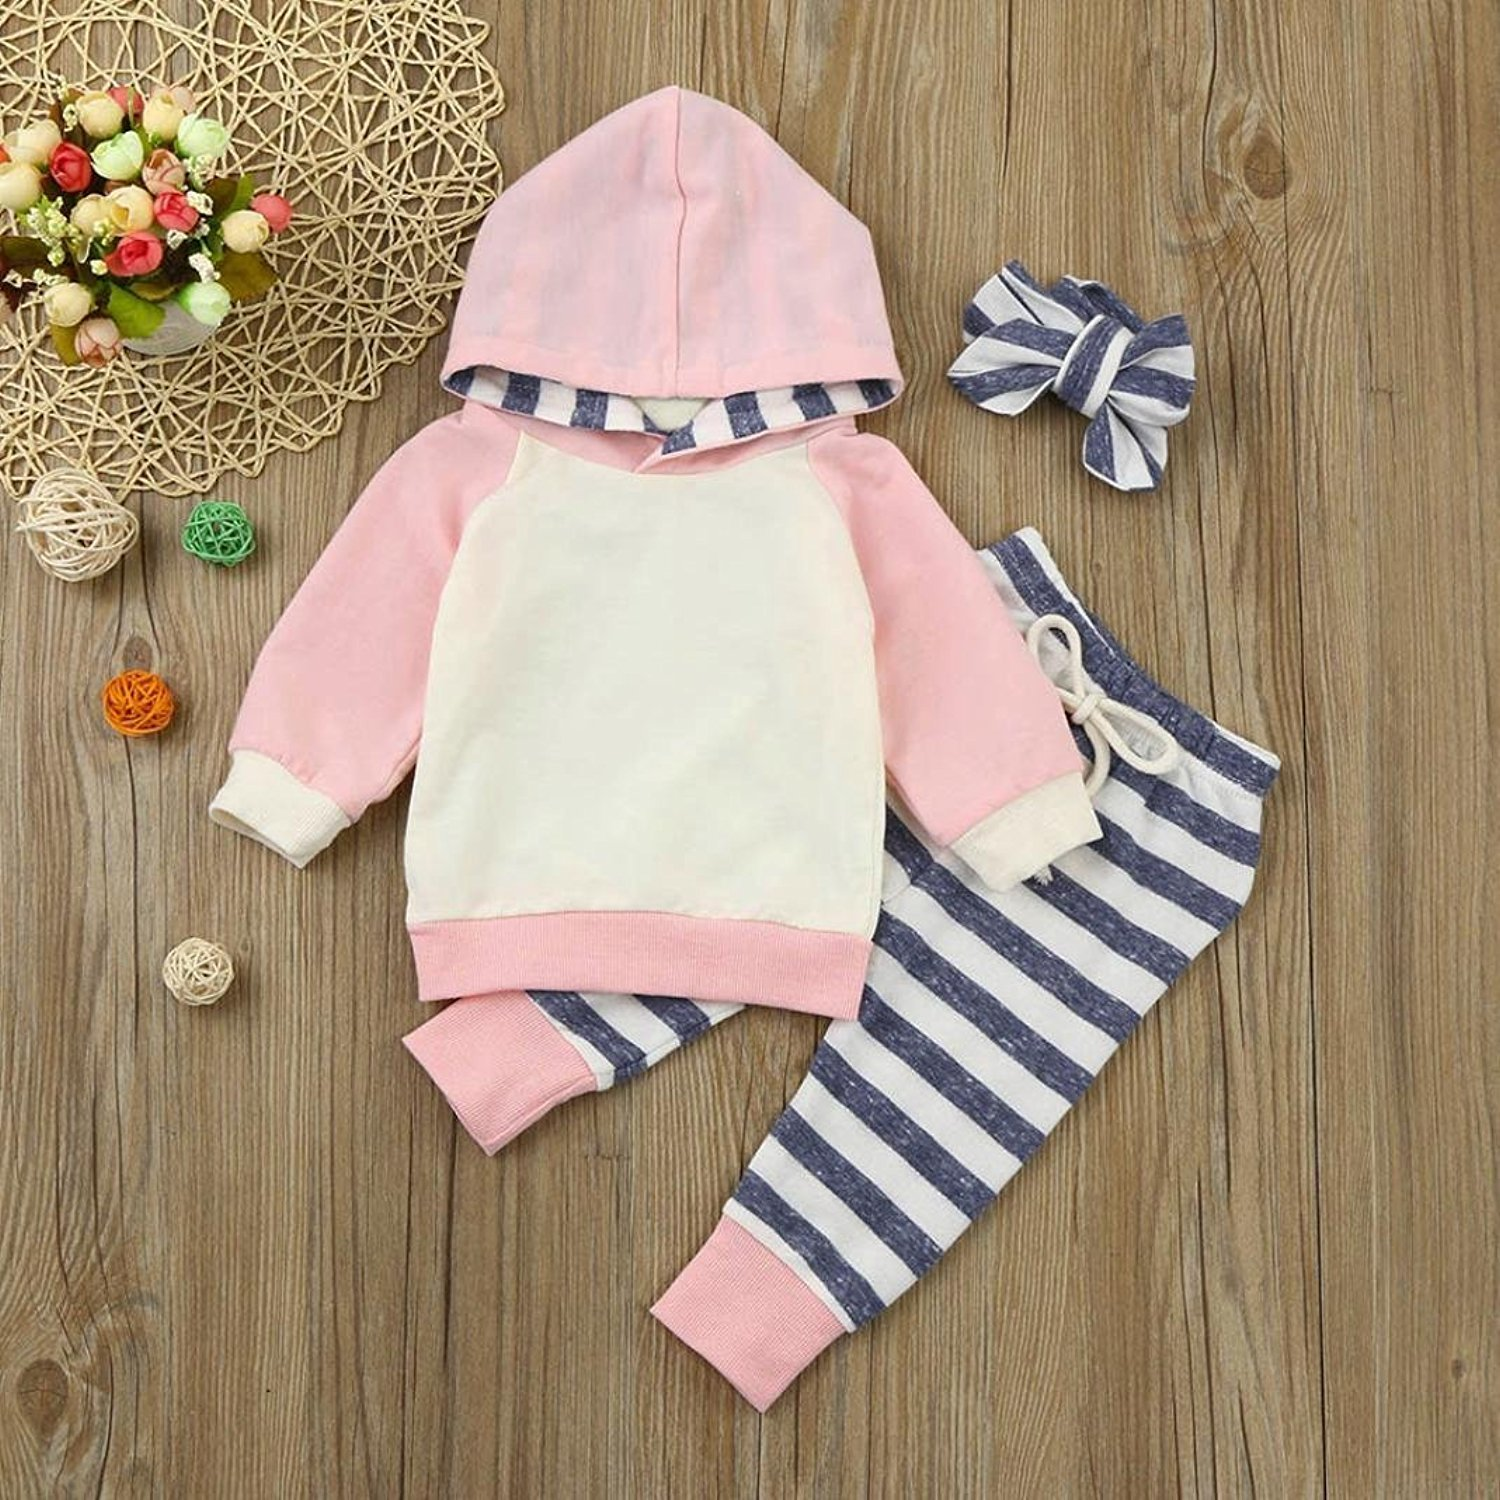 Baby Girls' Clothes Long Sleeve Hoodie Tops, Striped Pants+Headband Outfits Set (18-24 Months) by TUEMOS (Image #3)